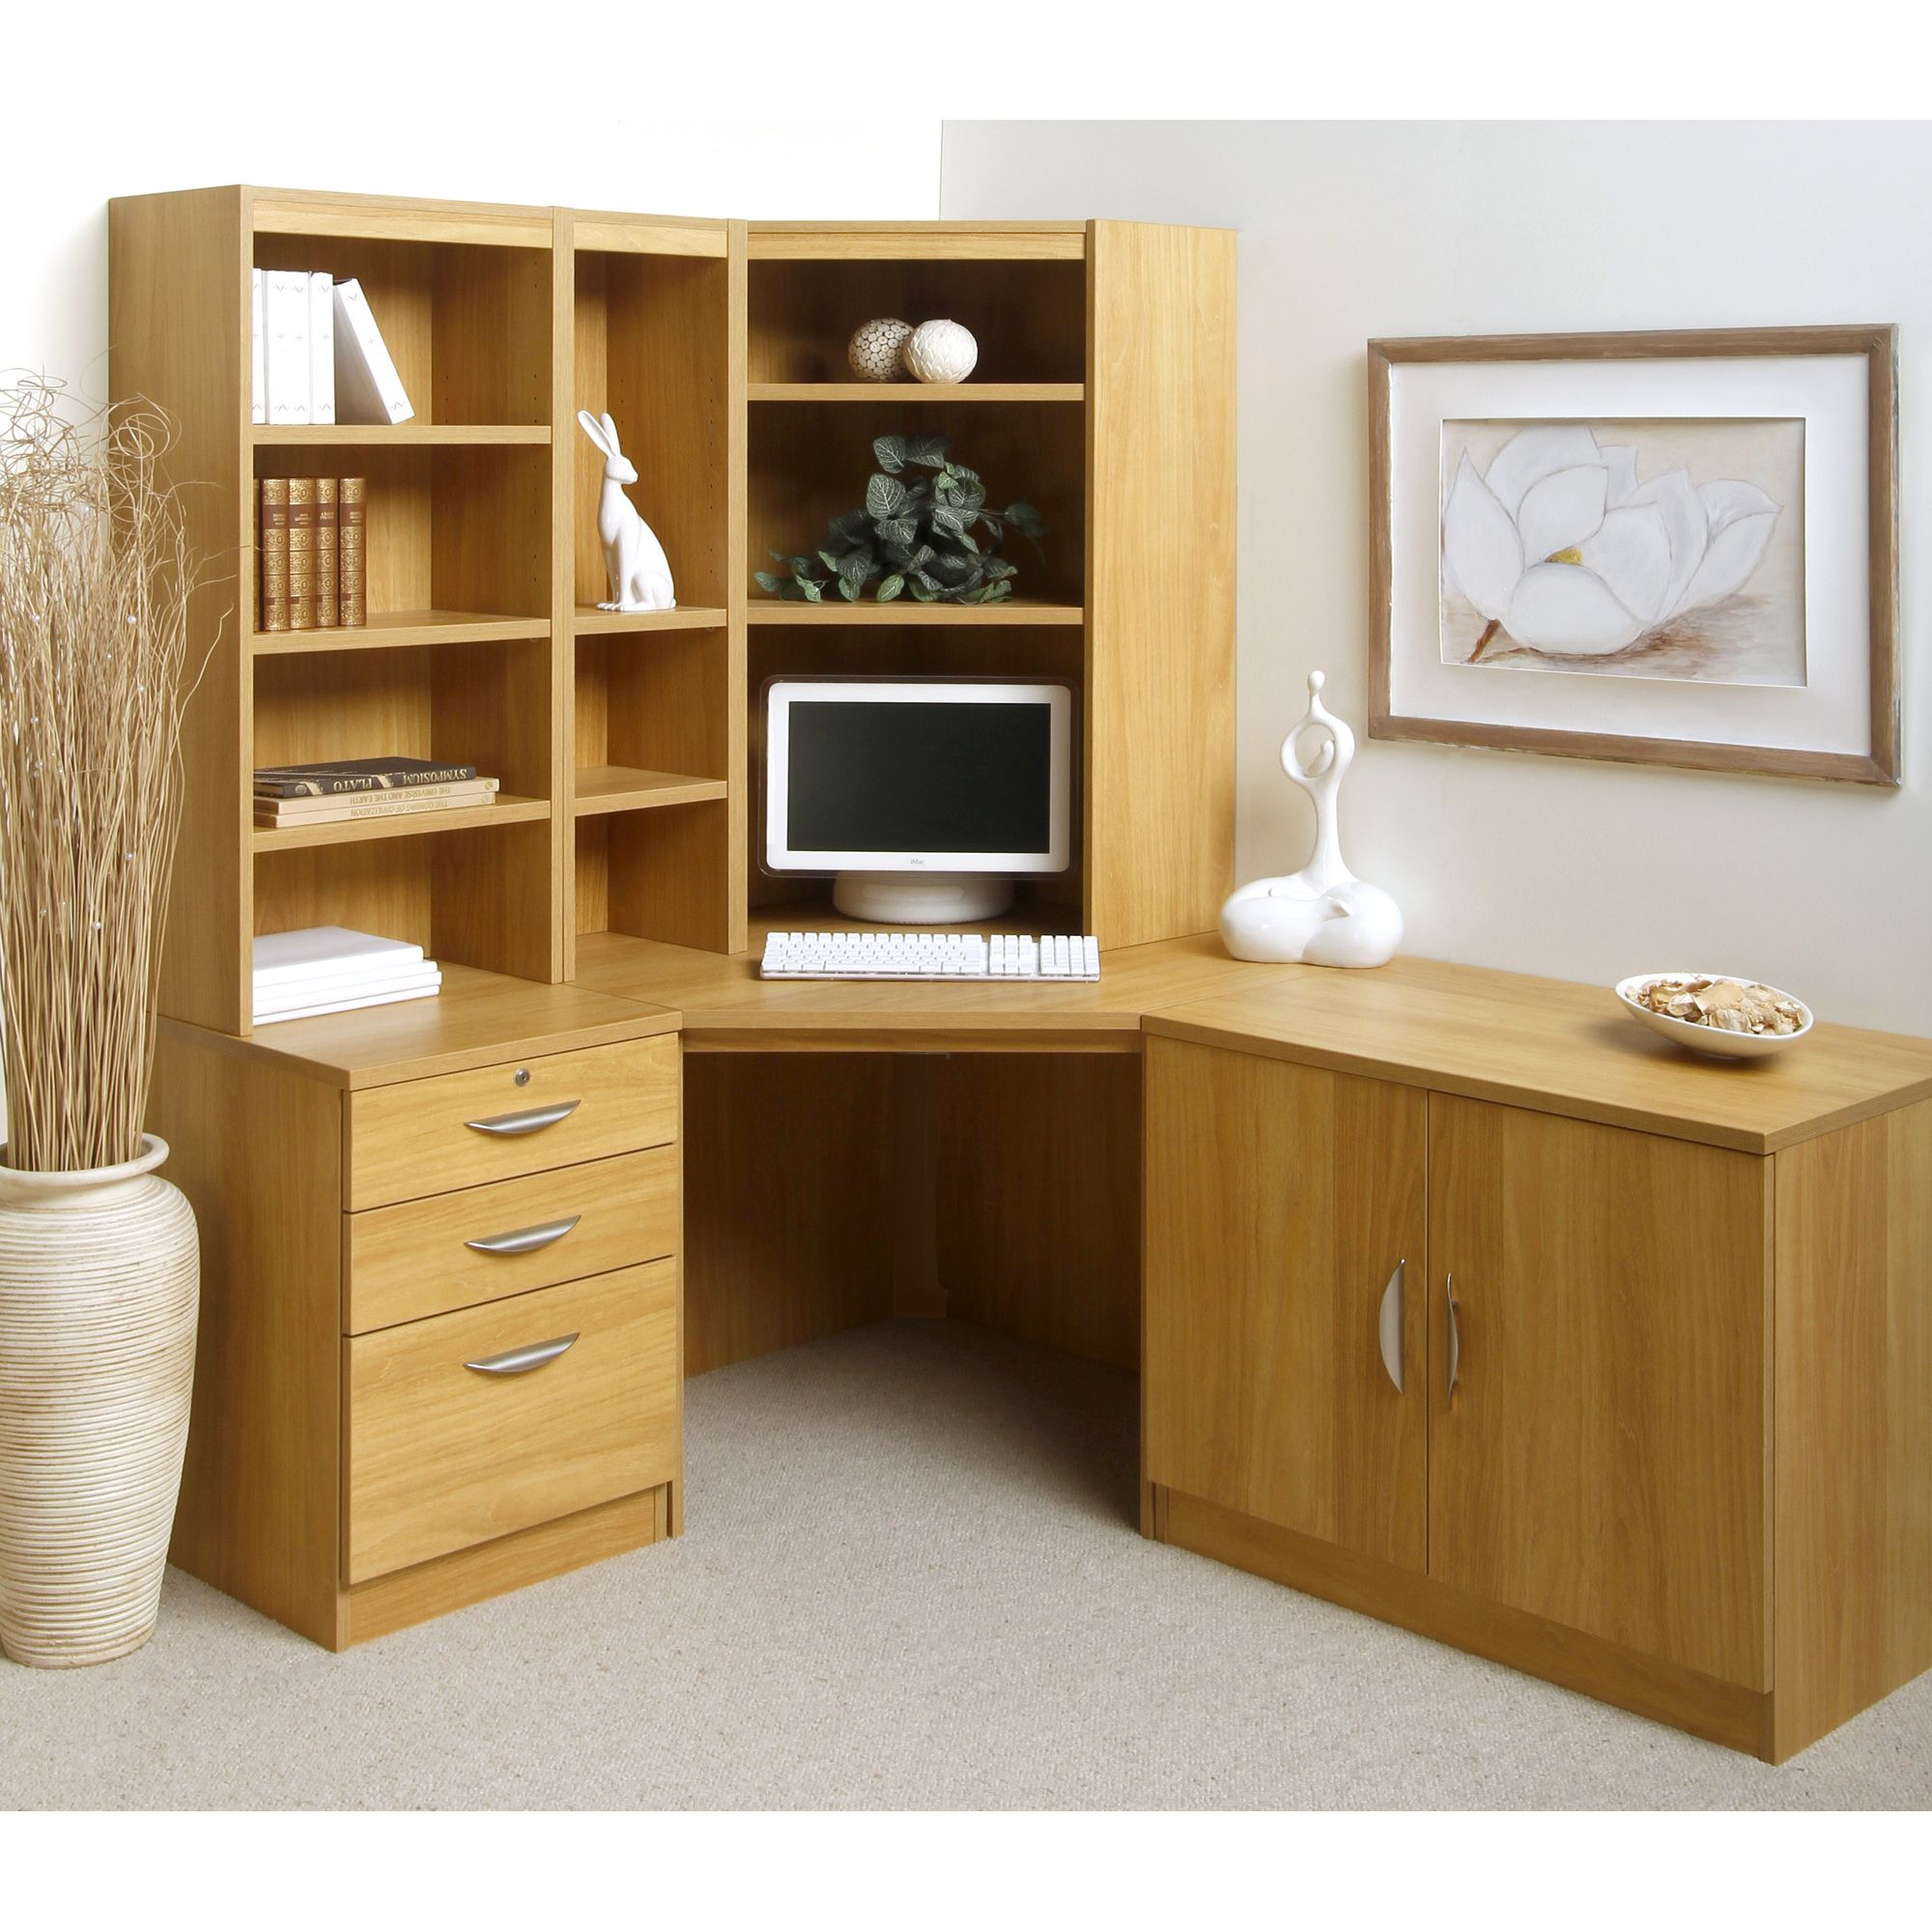 Uk Office Furniture Affordable Office Supplies Office Furniture Corner Desks